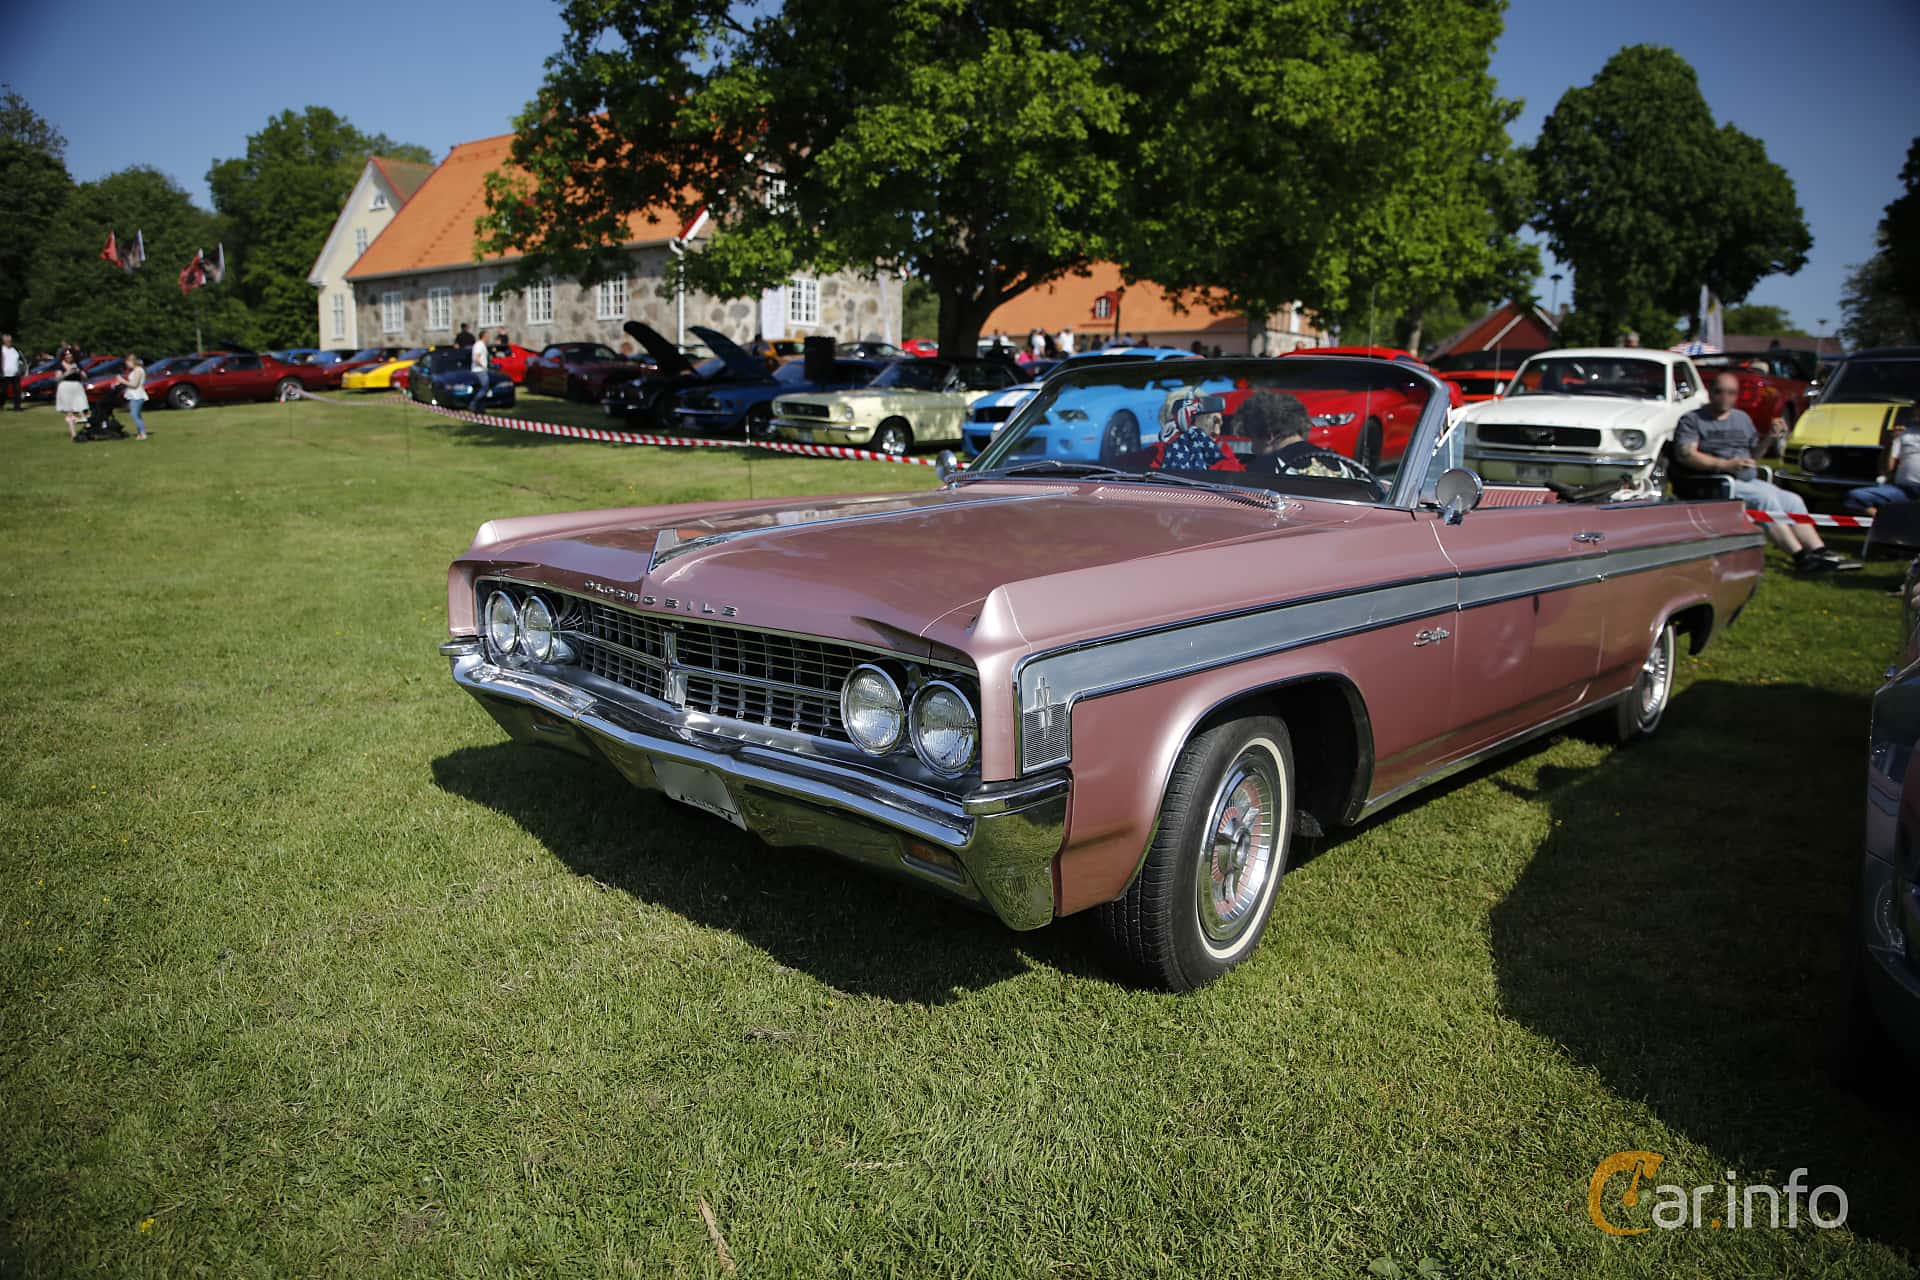 Oldsmobile Starfire Convertible 6.5 V8 Hydra-Matic, 350hp, 1963 at Hässleholm Power Start of Summer Meet 2016